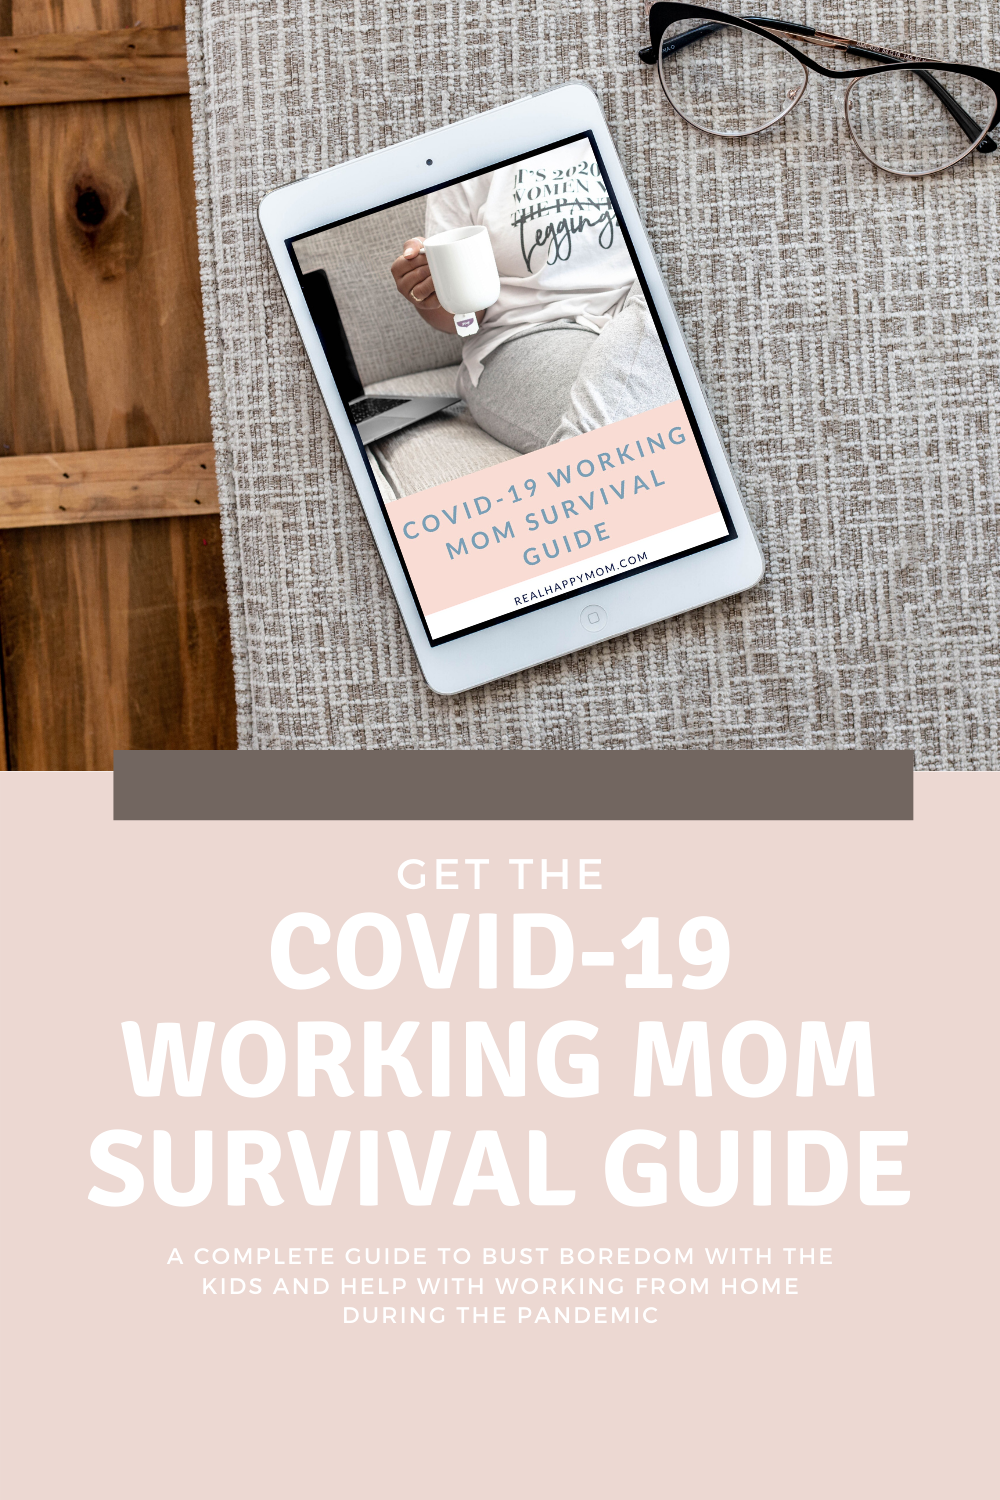 COVID-19 Working Mom Survival Guide